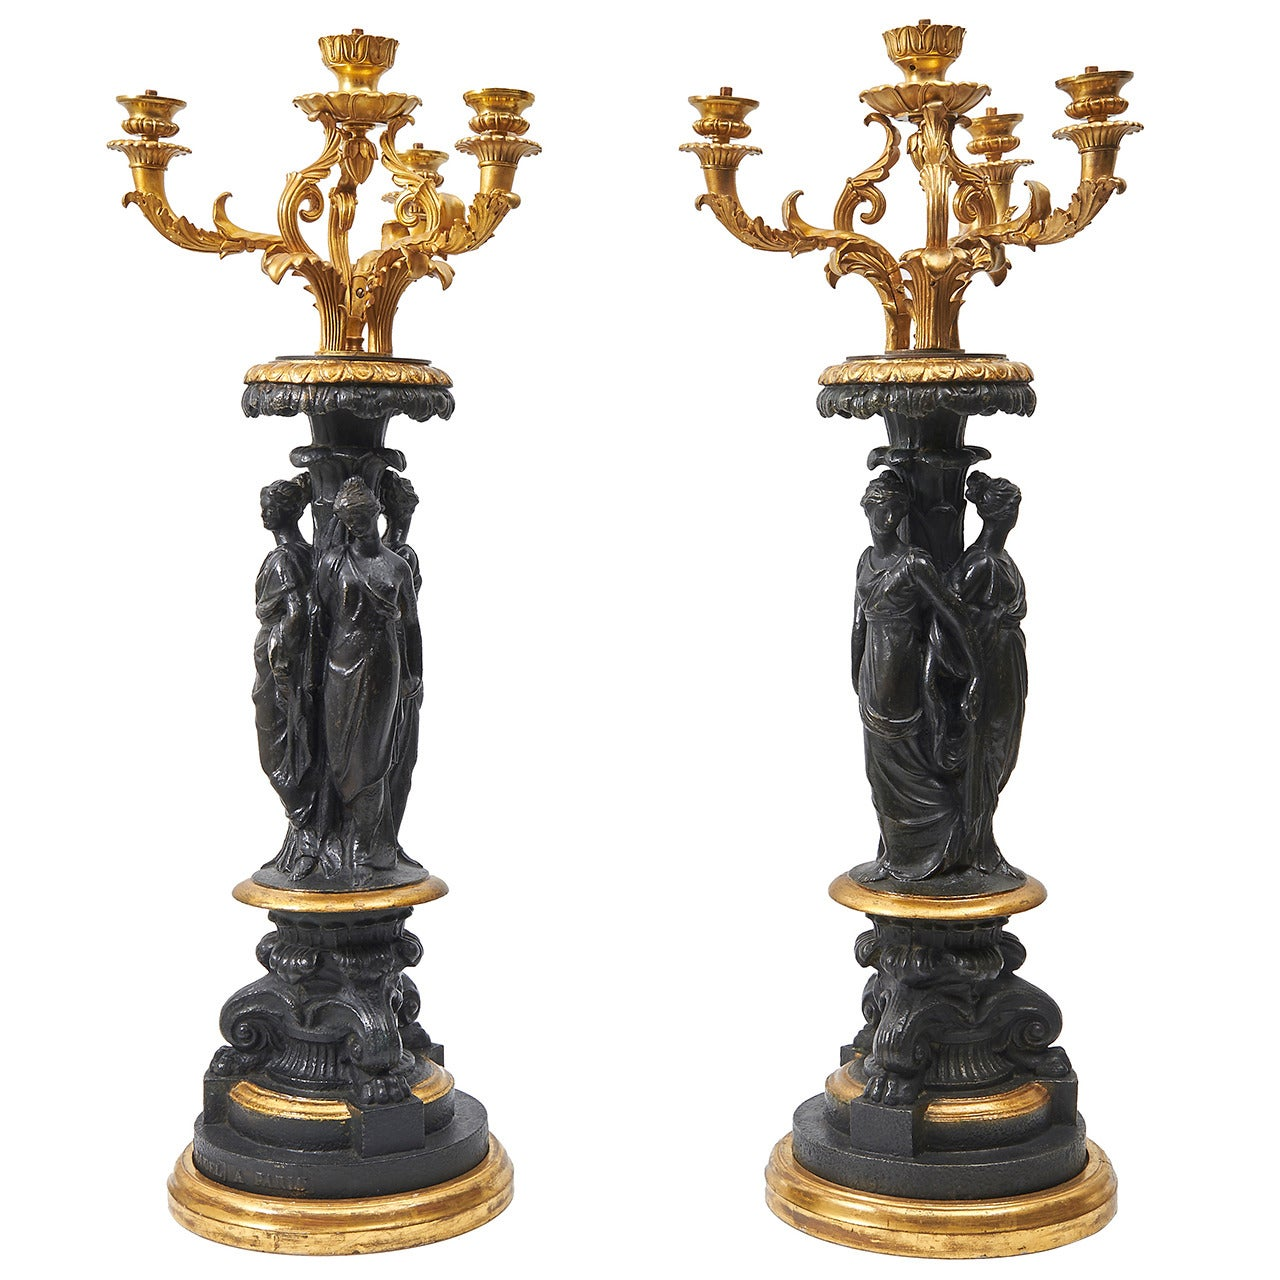 Pair of Statuesque Cast Iron and Ormolu Lamp Bases by Ducel, circa 1860